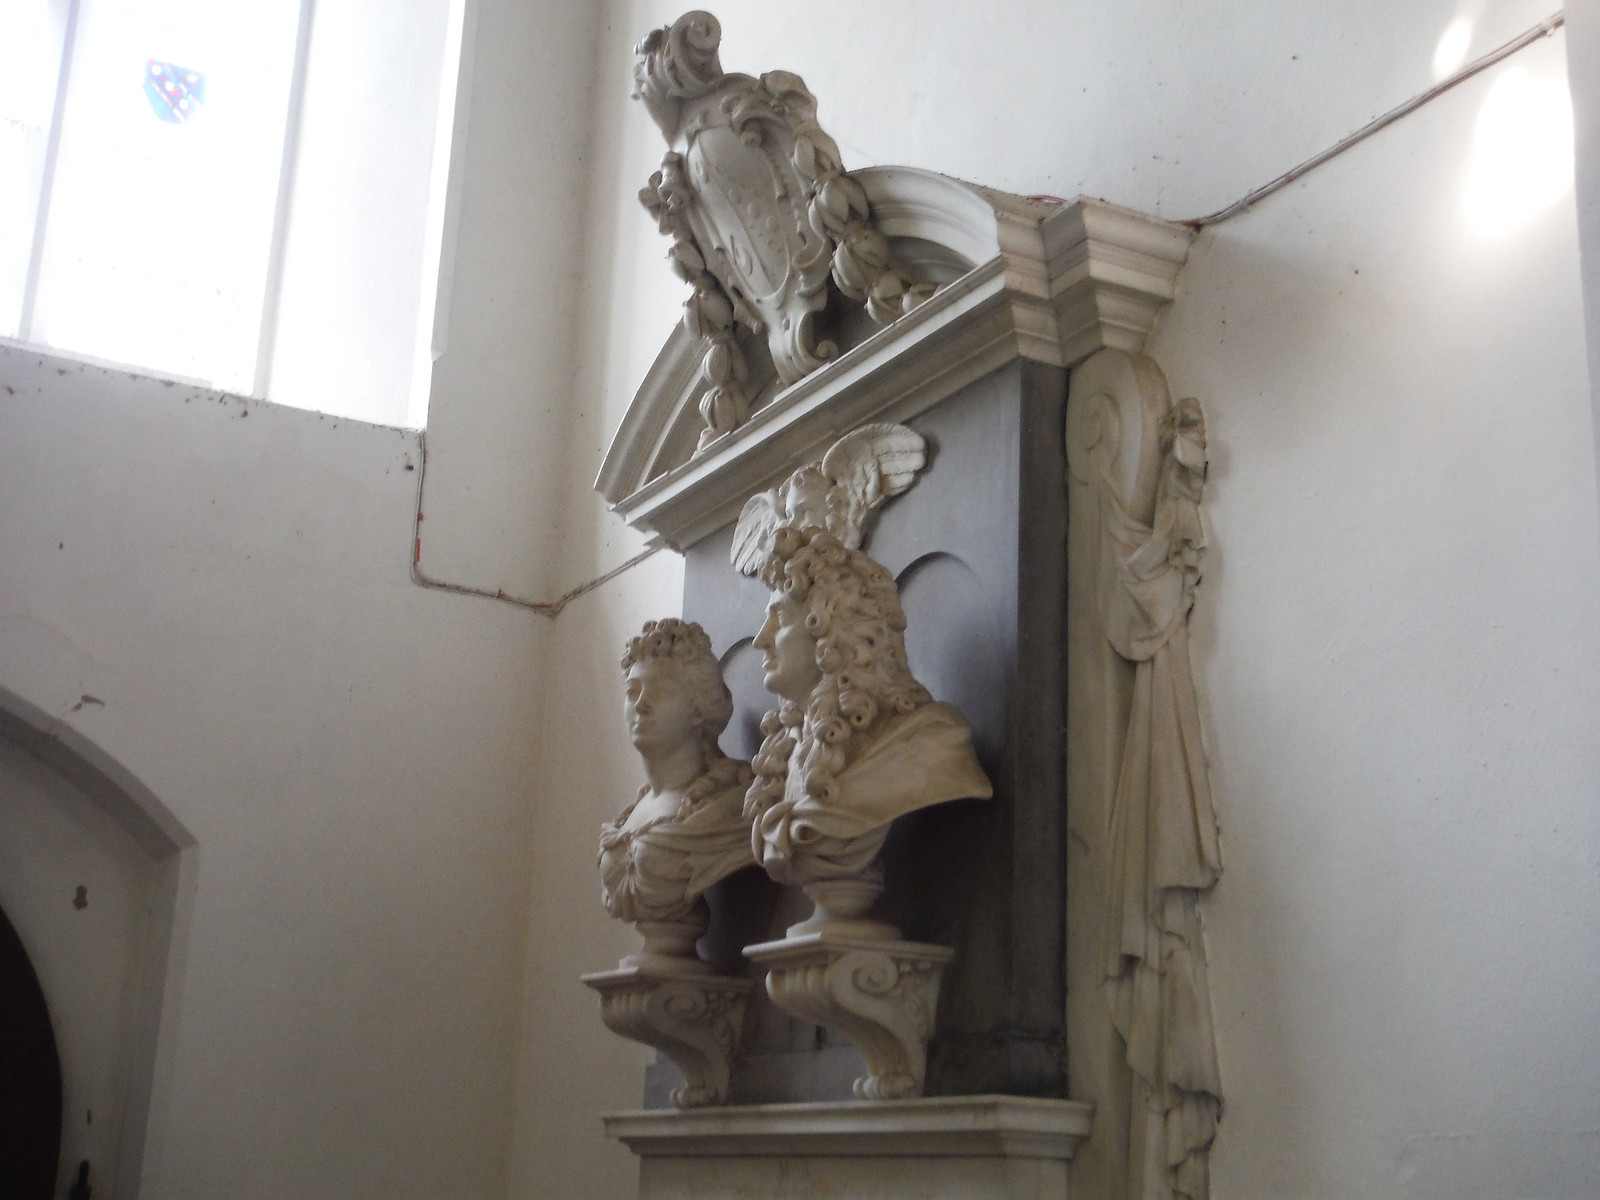 Marble sculptured monument, St. Mary the Virgin, Arkesden SWC Walk 116 Wendens Ambo [Audley End station] Circular